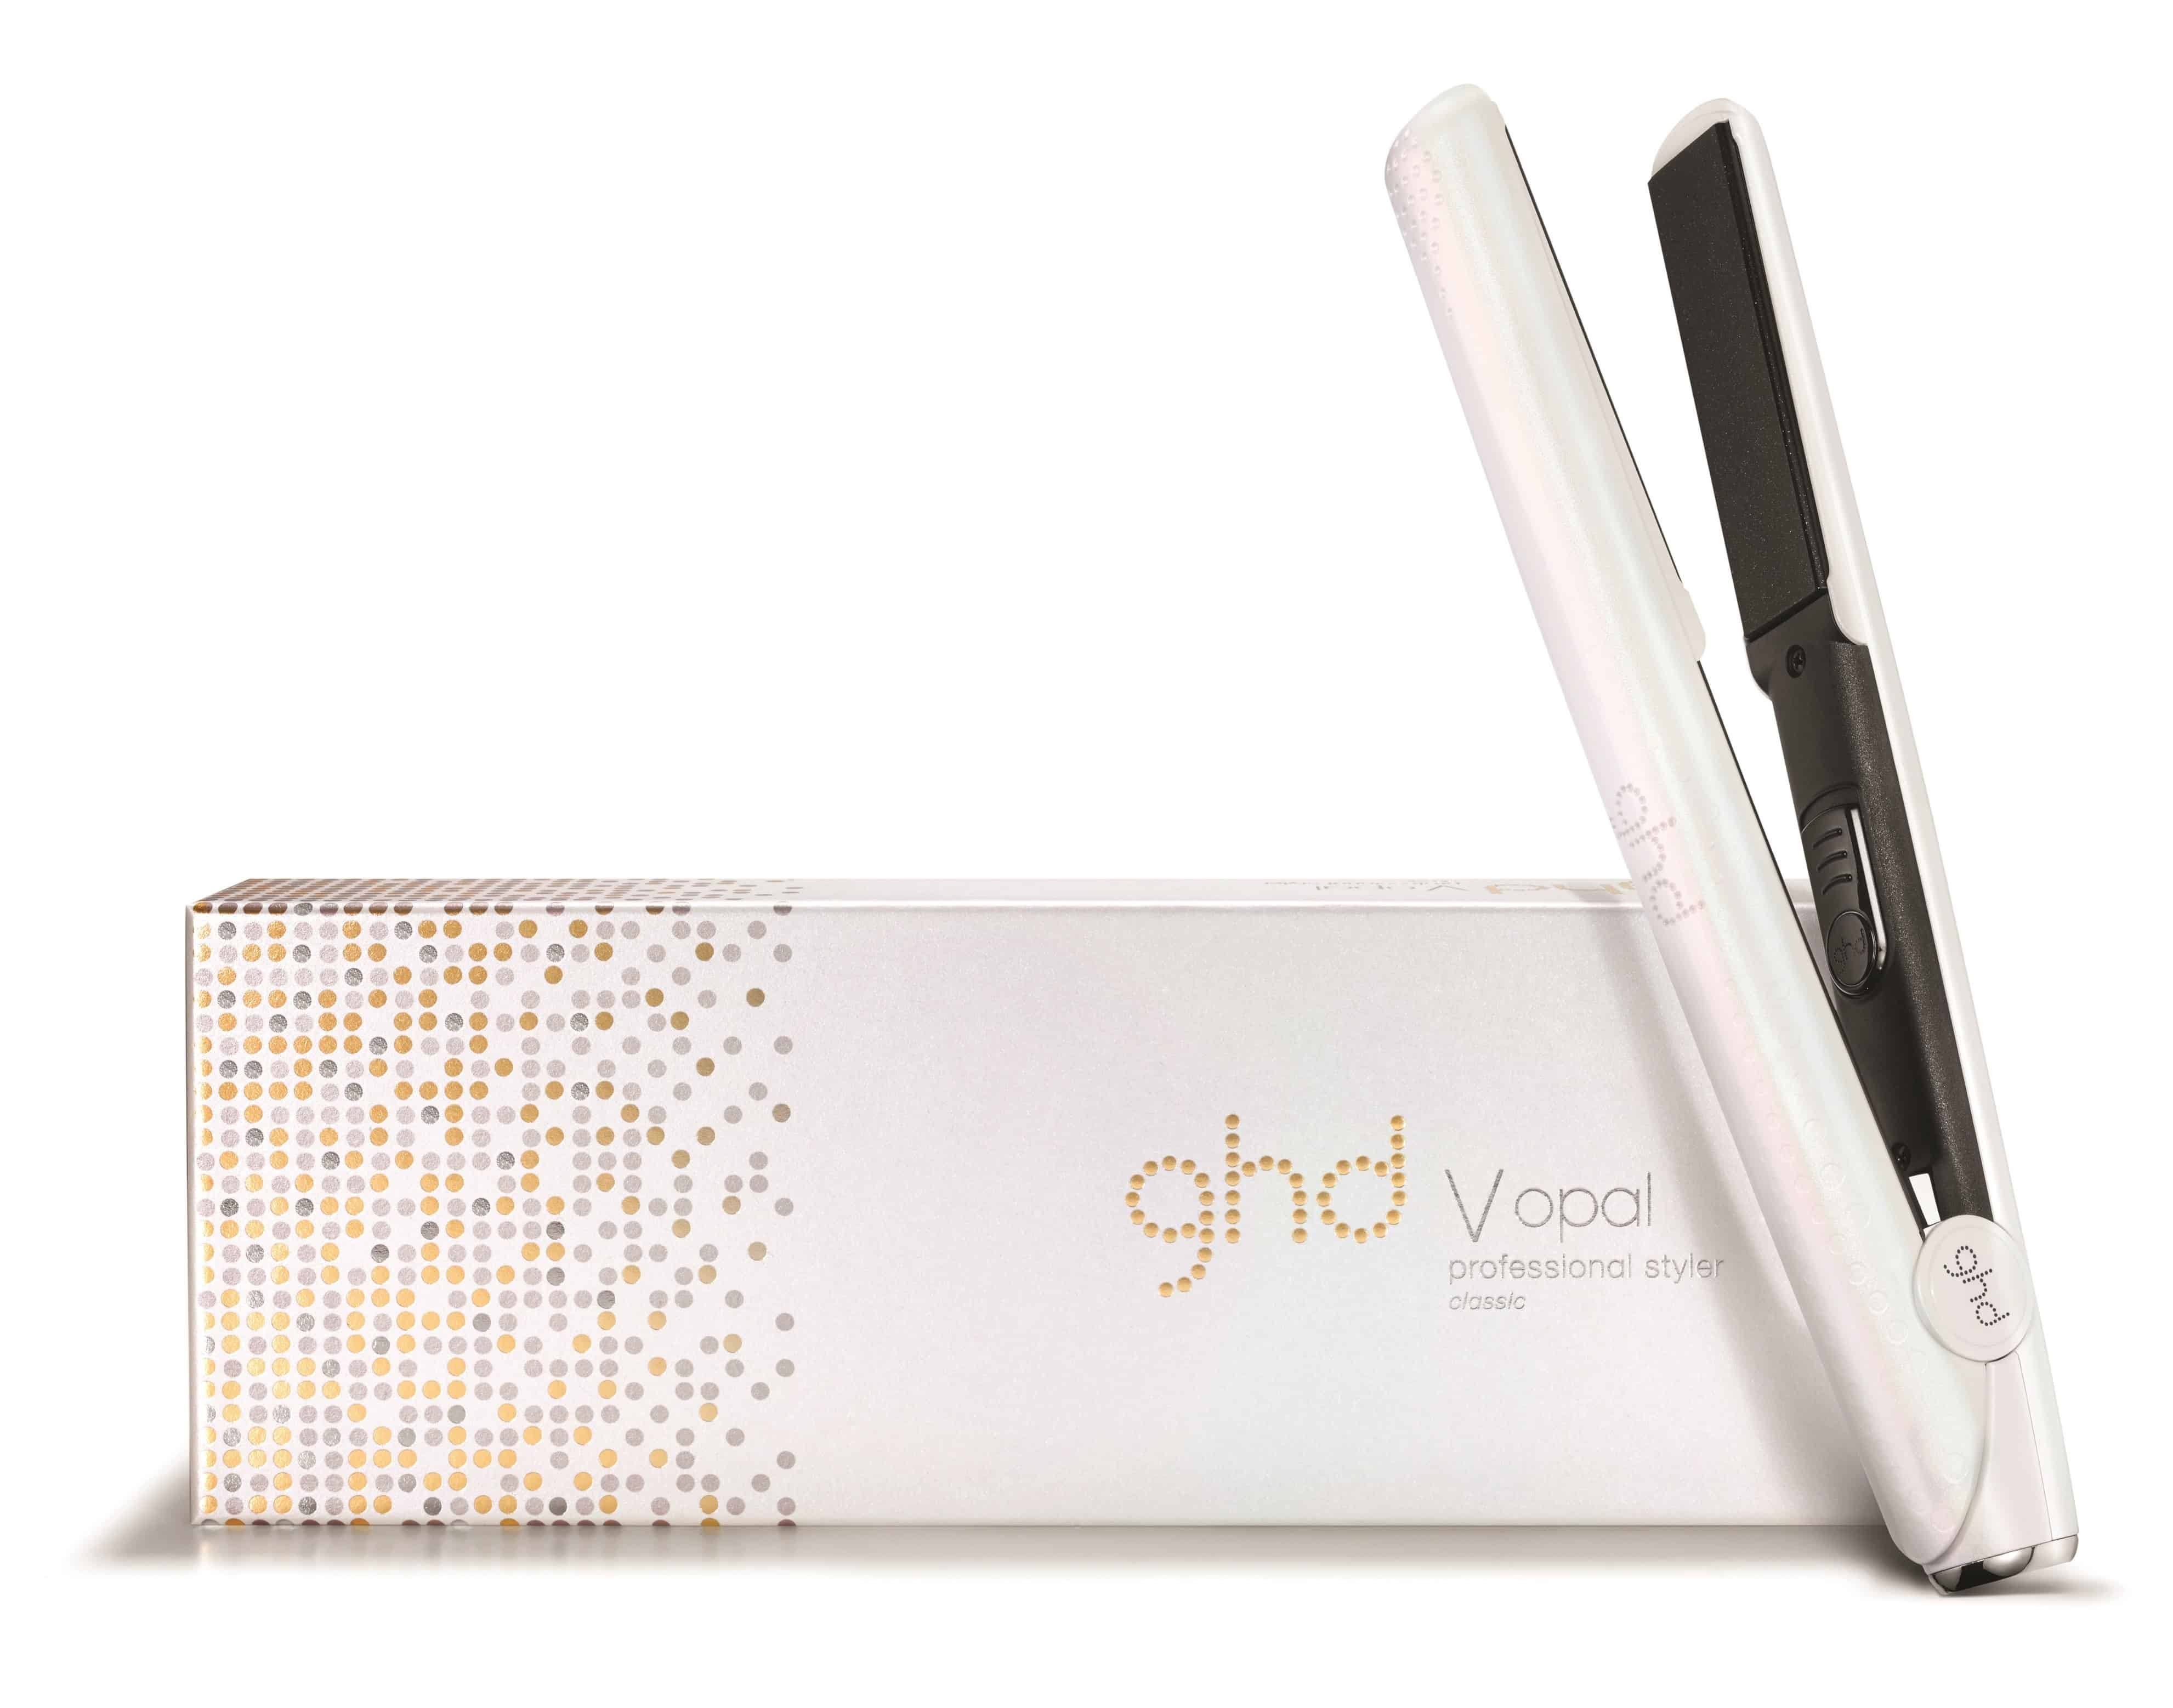 ghd TRY THE BEST: il progetto per testare una styler ghd a casa propria